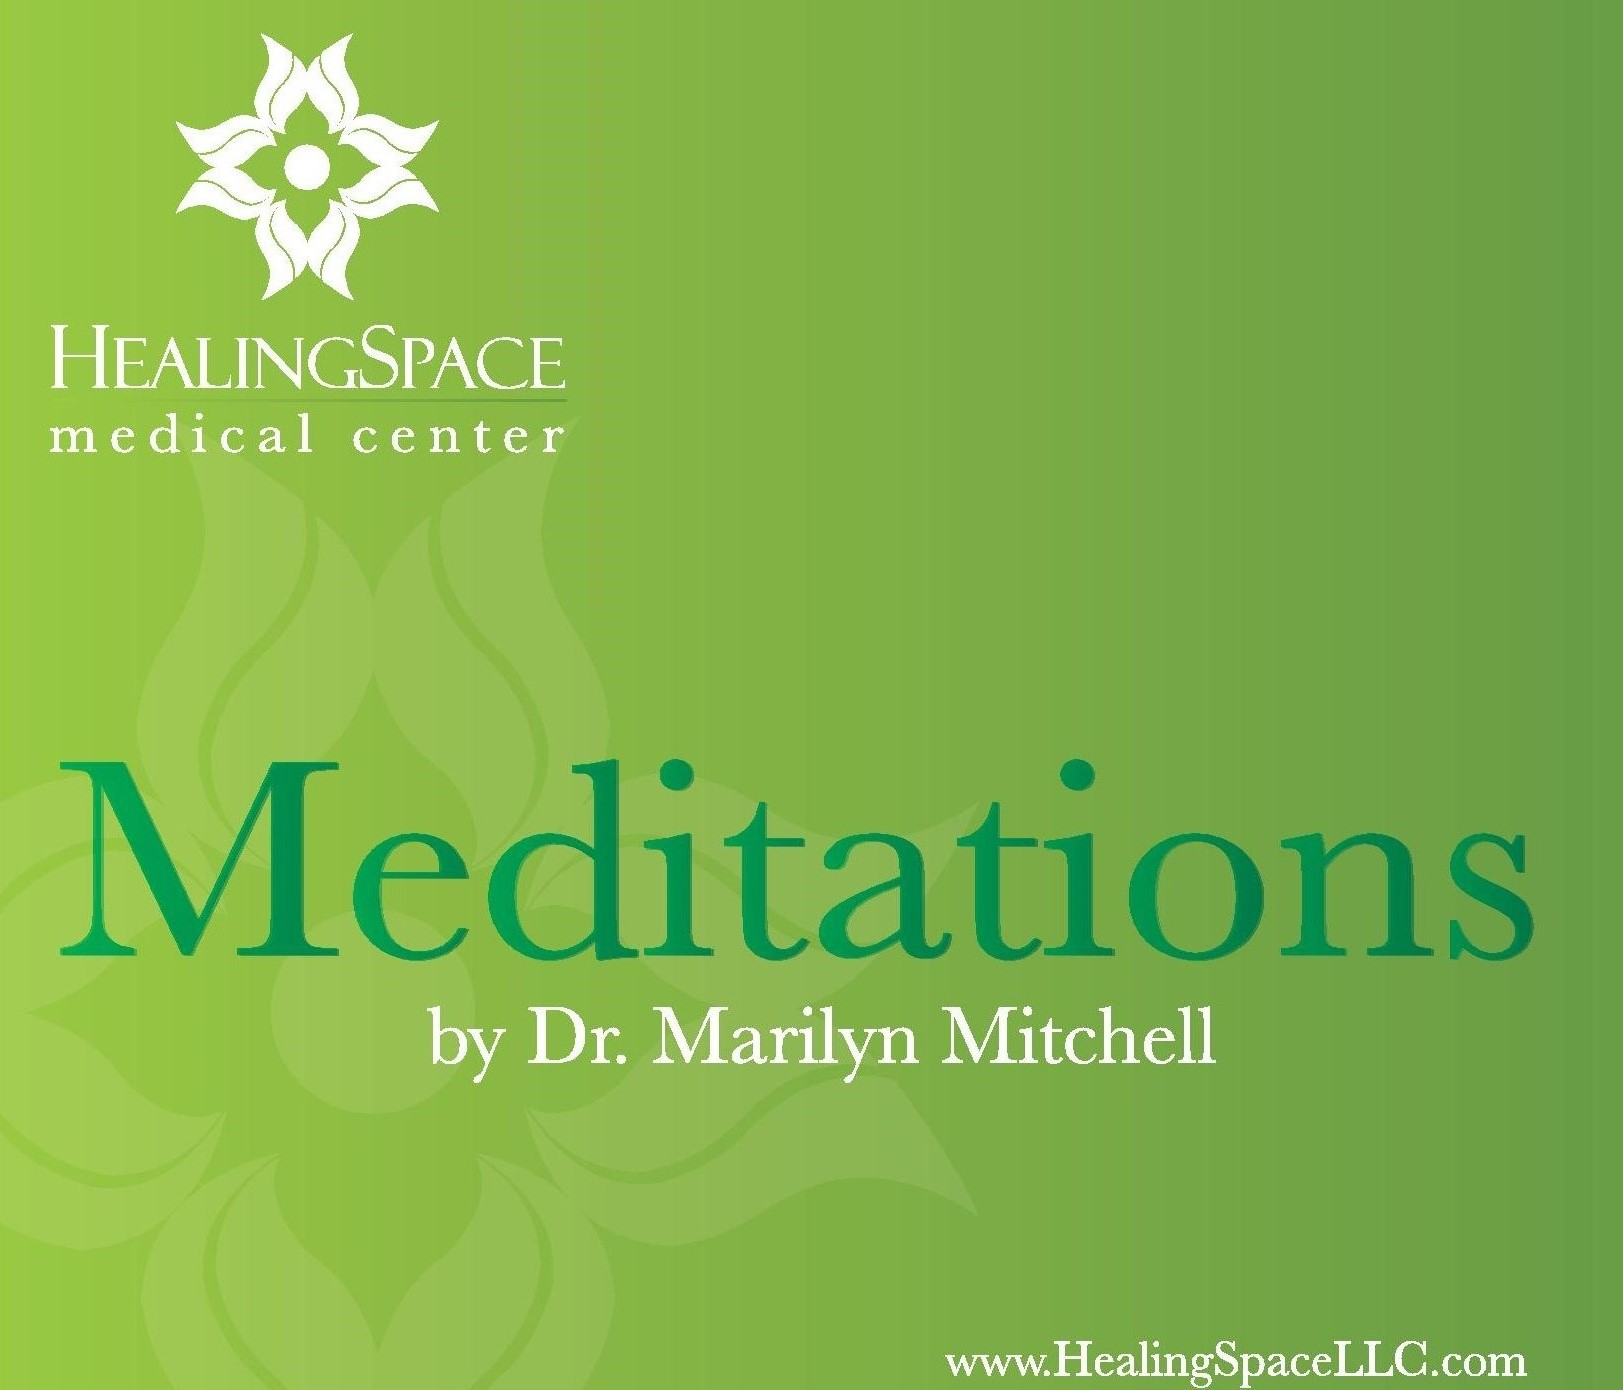 Marilyn Mitchell, MD: HealingSpace Meditations